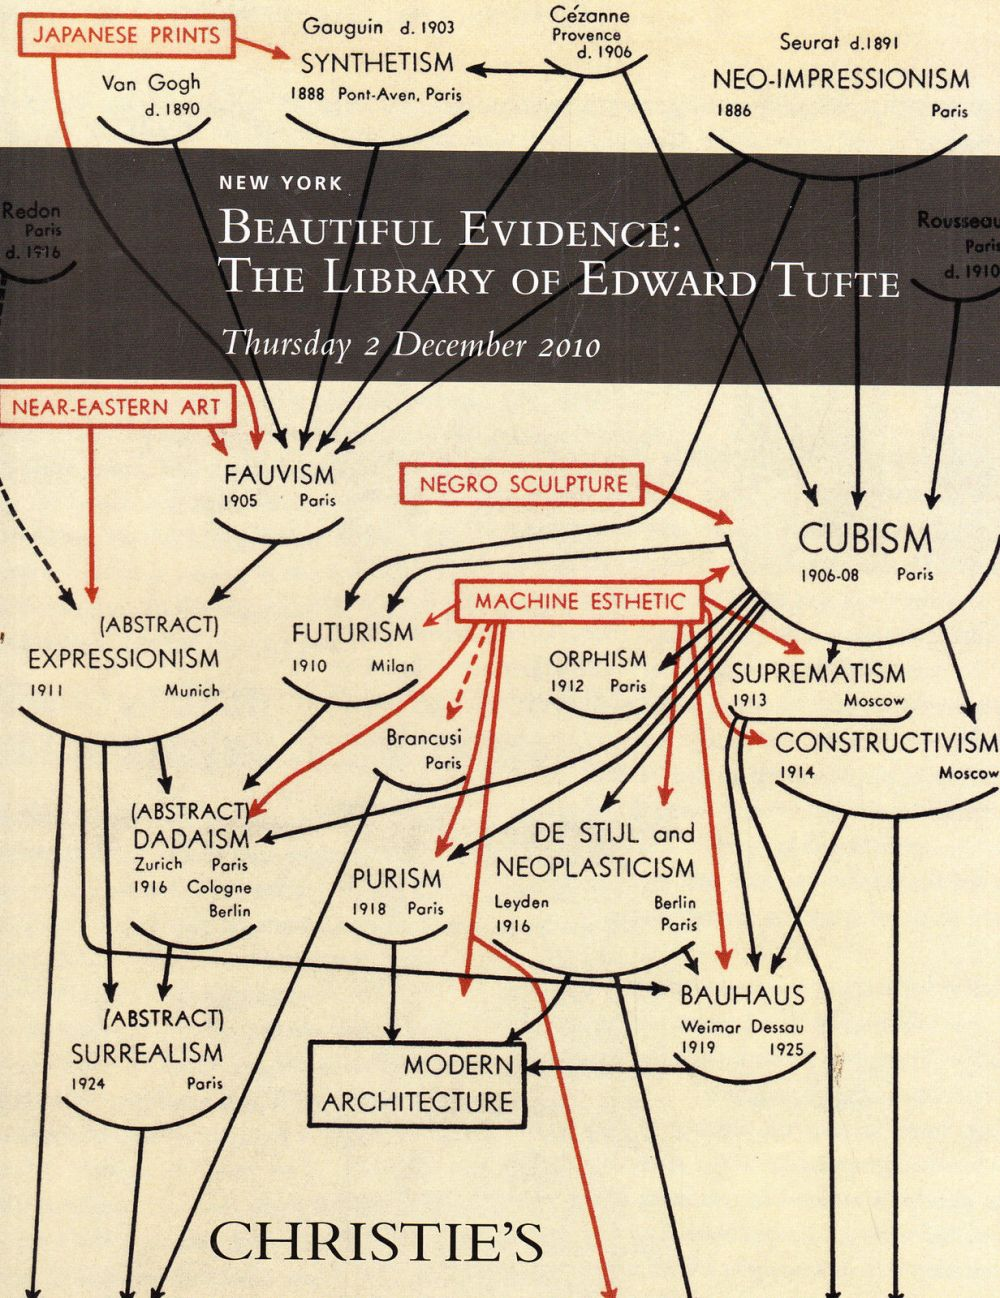 medium resolution of  out of stock email me and i will try to locate one christie s beautiful evidence the library of edward tufte 12 2 10 sale code 2400 auction catalogs